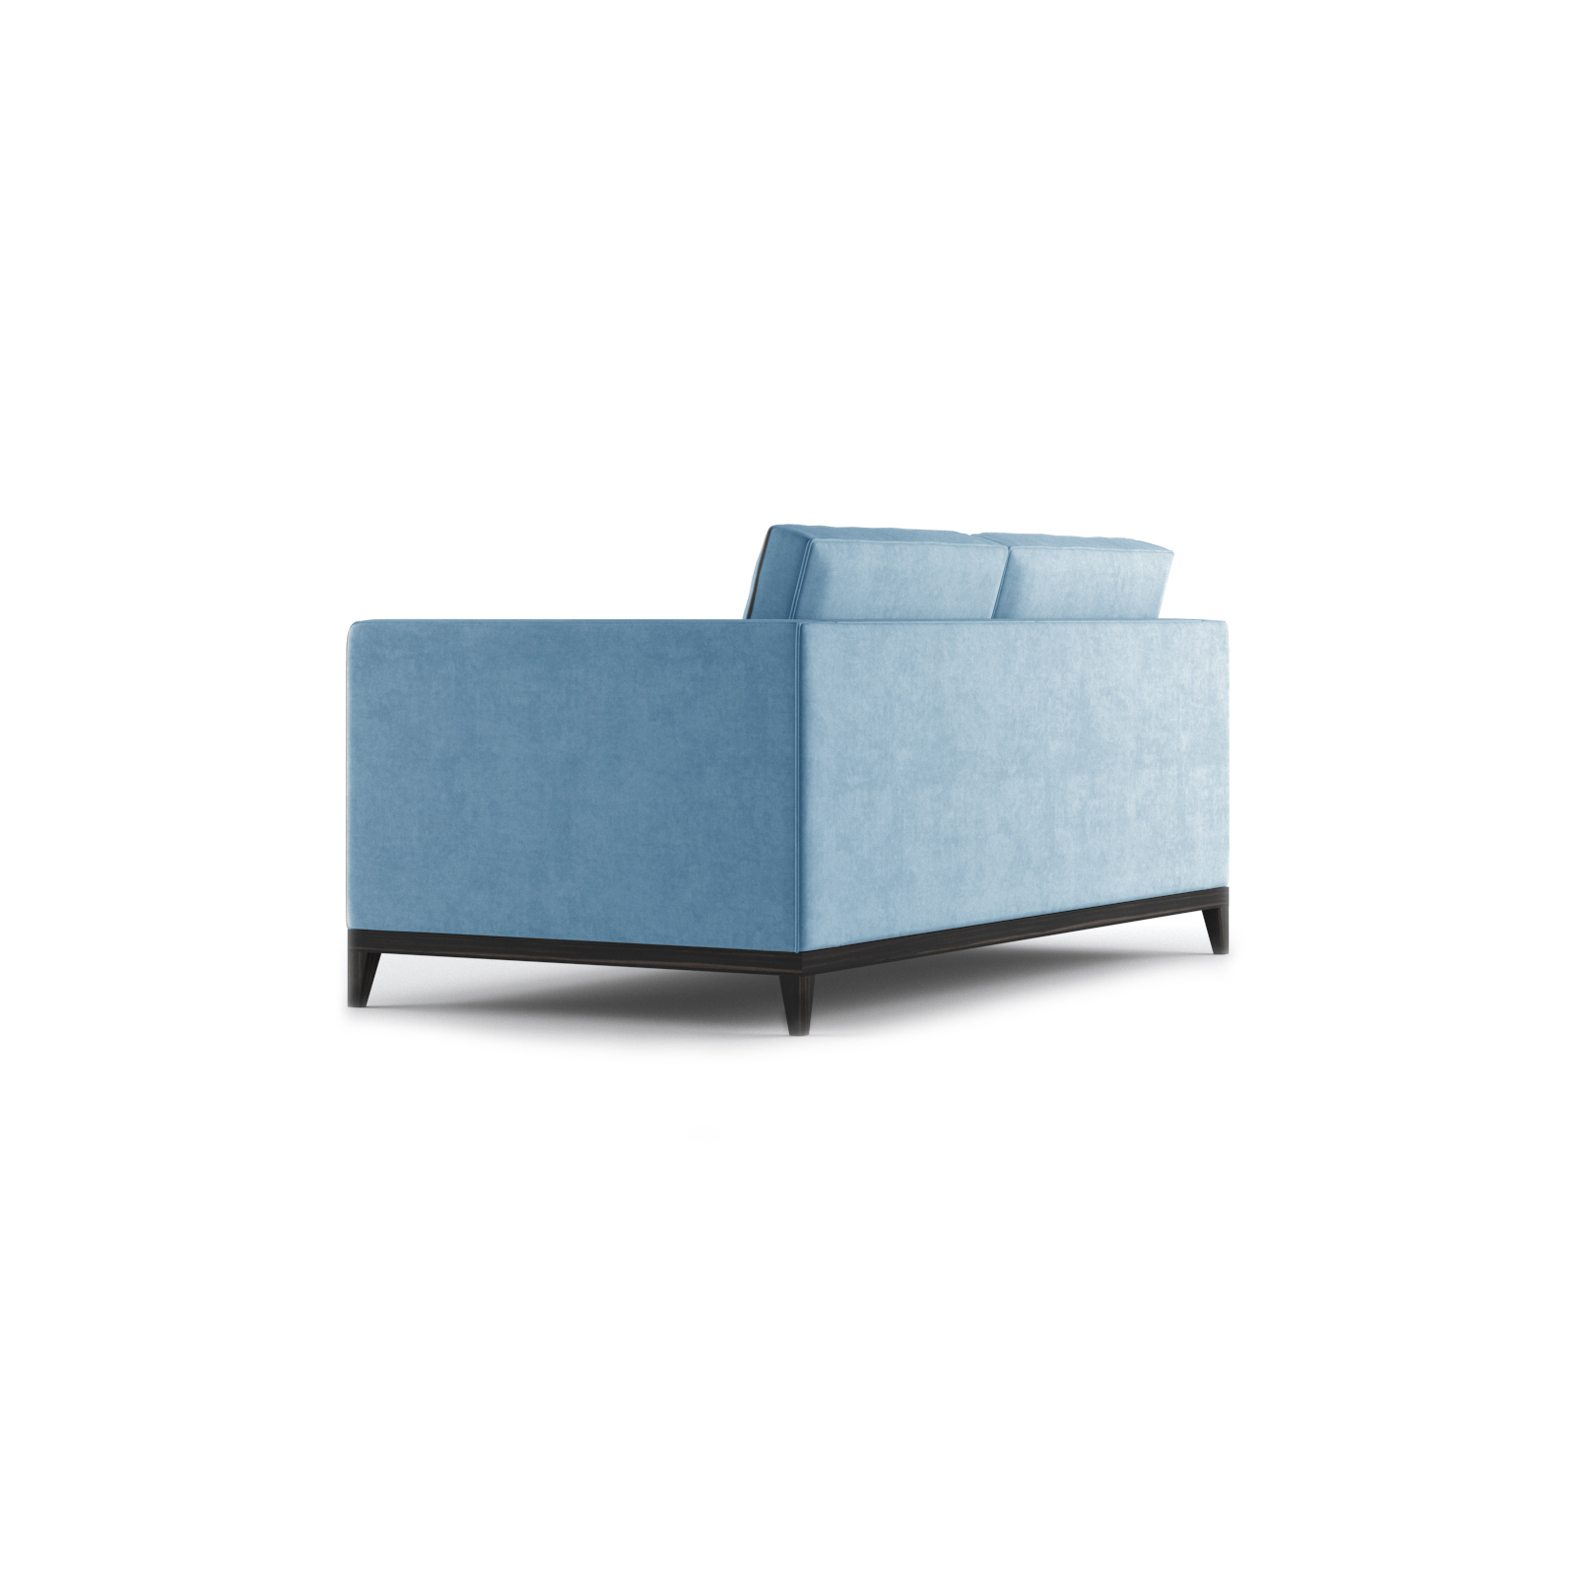 Armstrong Two Seater Sofa by Bonham & Bonham Blue 05